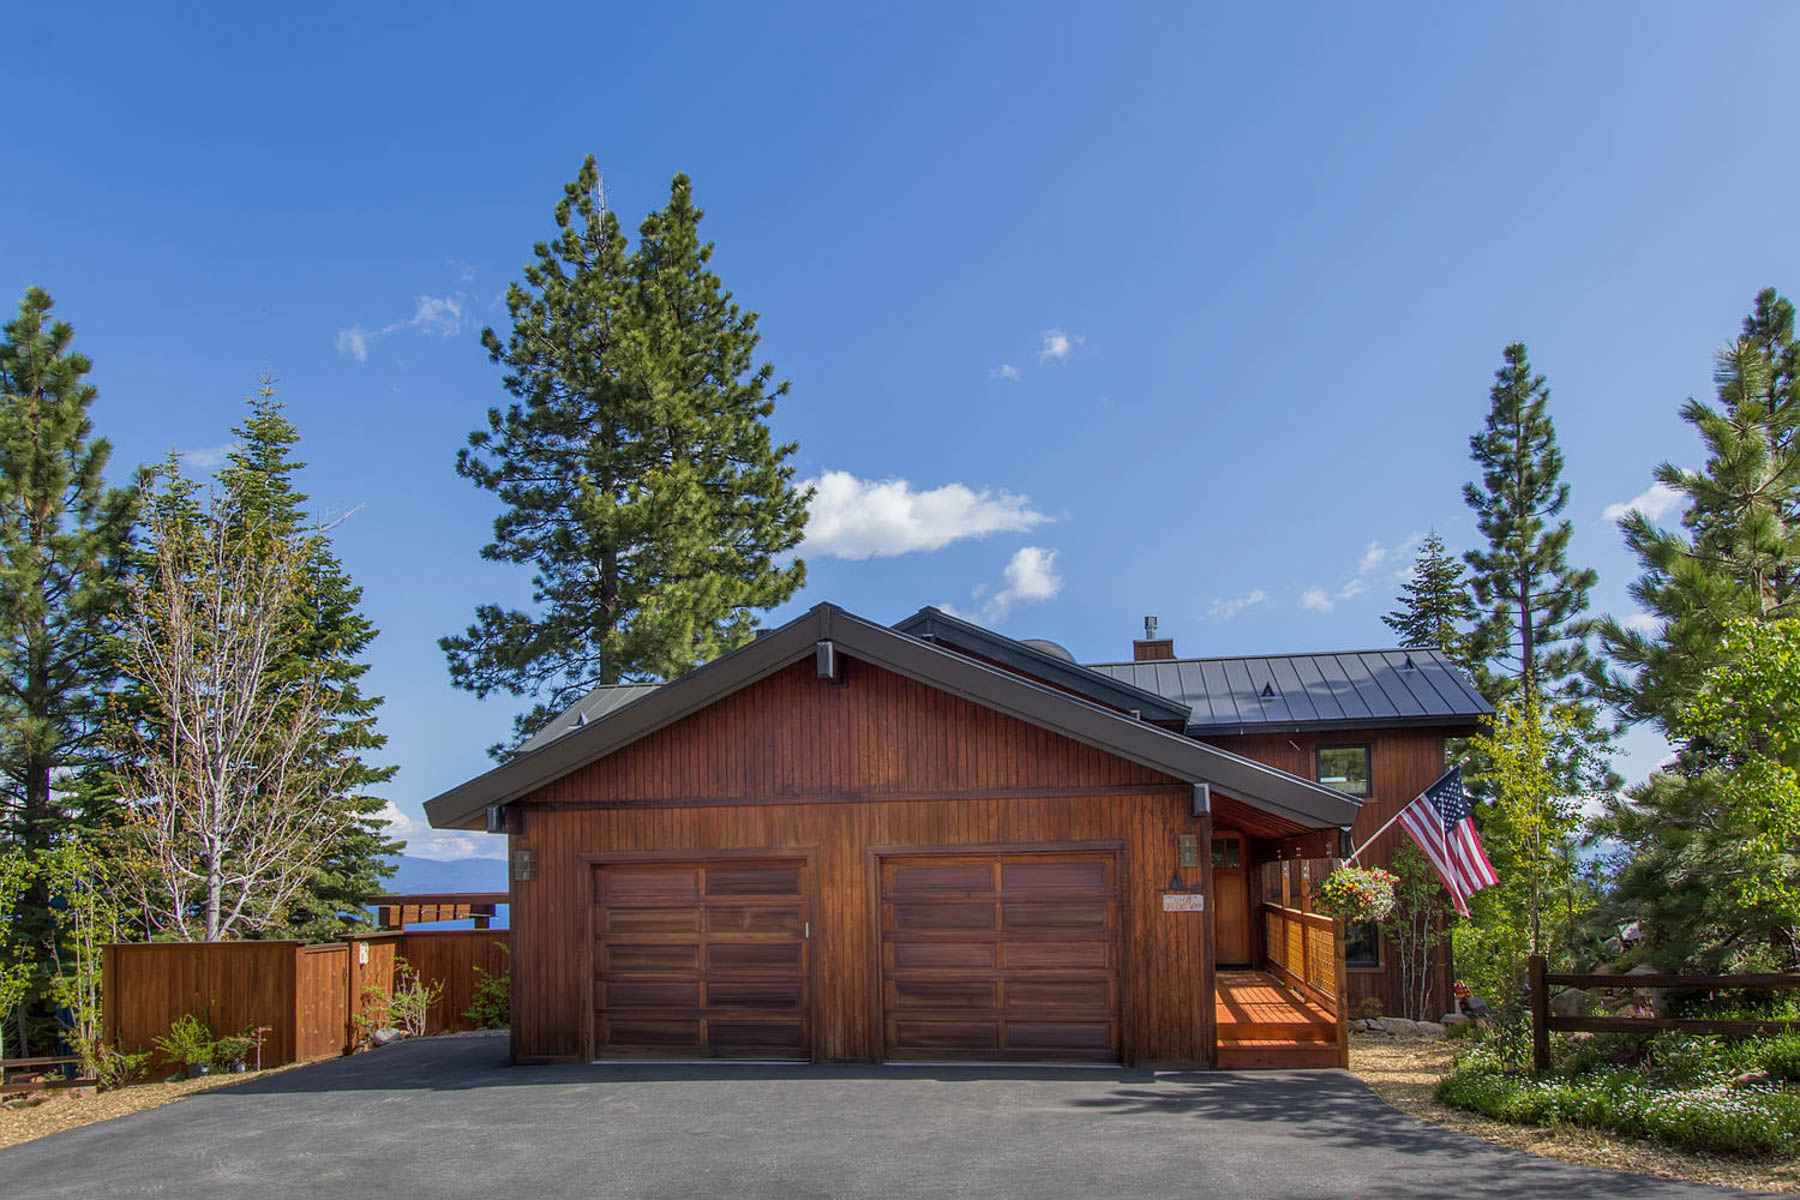 Property for Active at 1578 Queens Way, Tahoe Vista, Ca 96148 1578 Queens Way Tahoe Vista, California 96146 United States